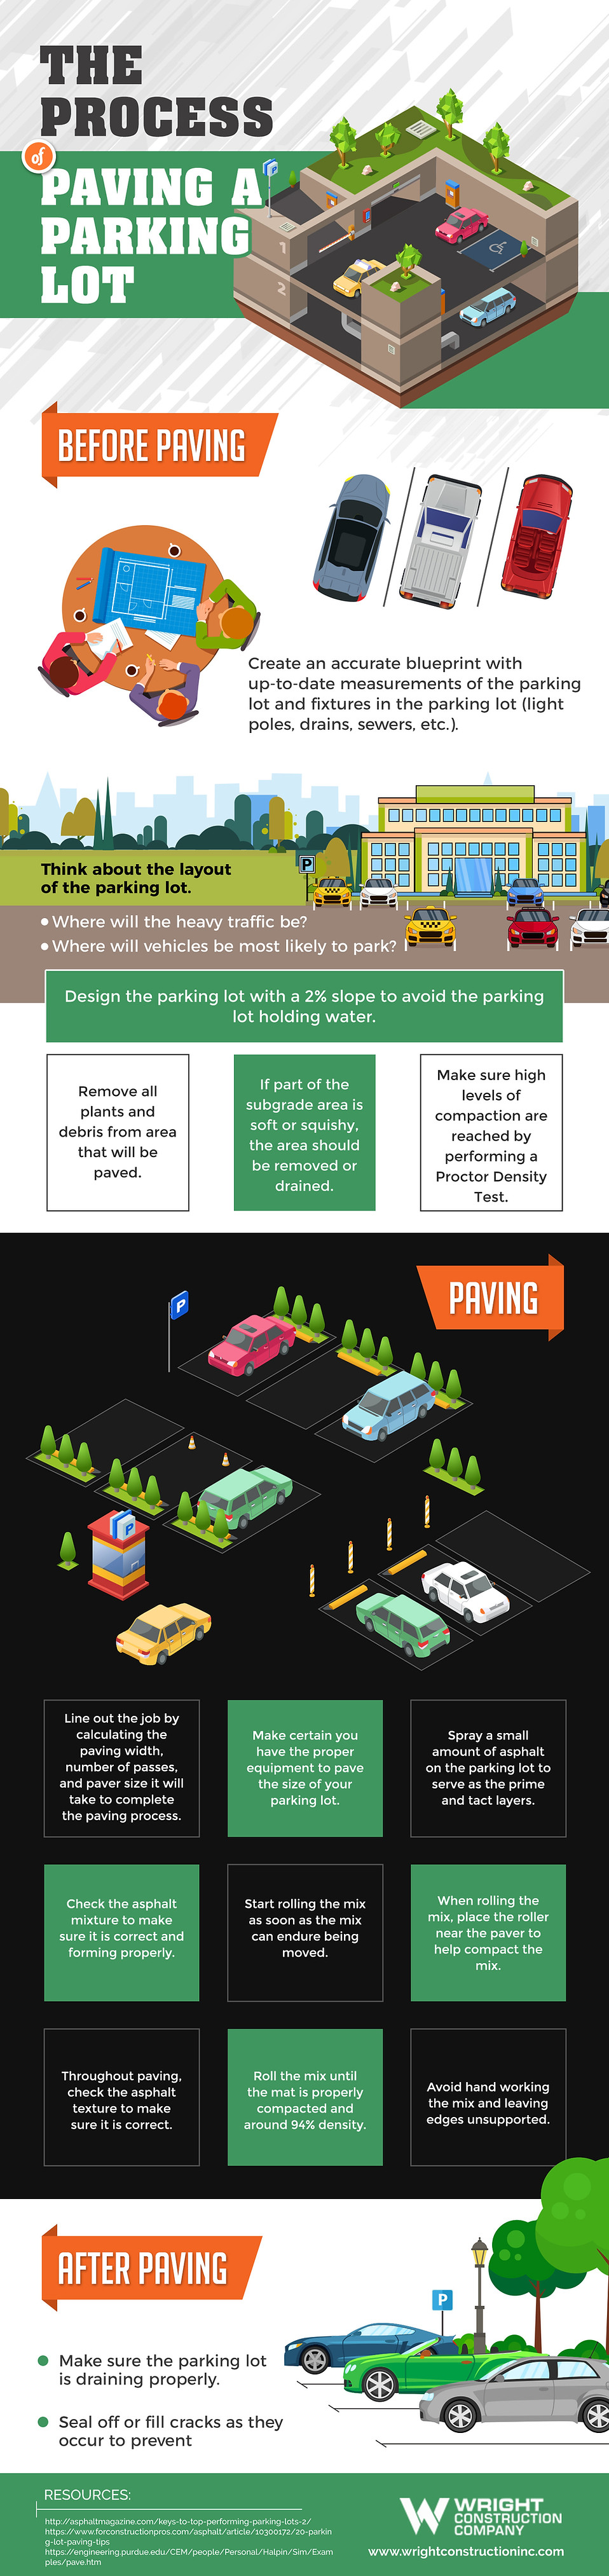 The-Process-of-Paving-a-Parking-Lot.jpg